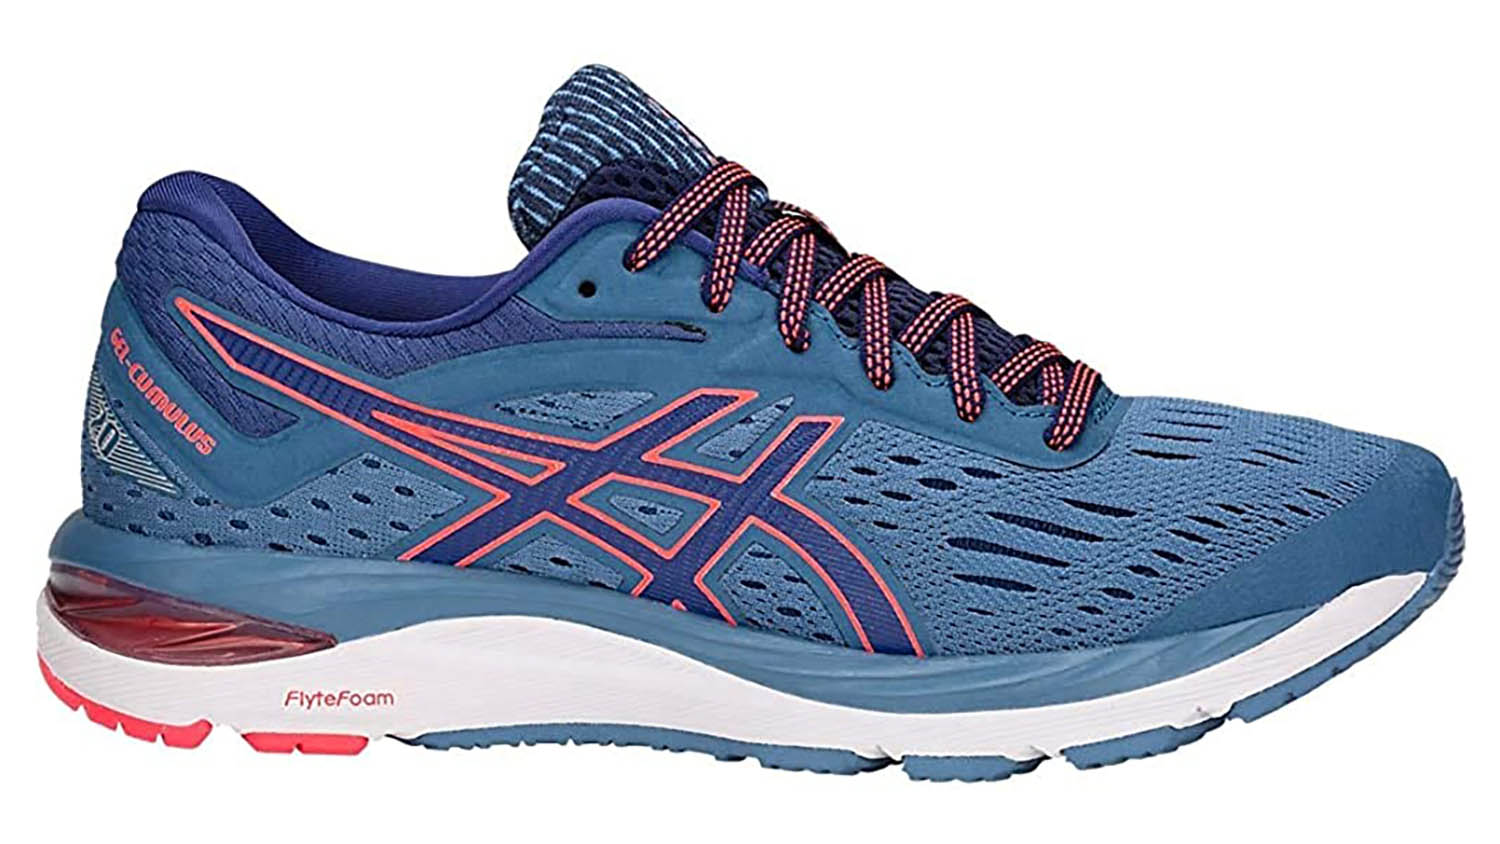 Best Running Shoes for Women Over 50